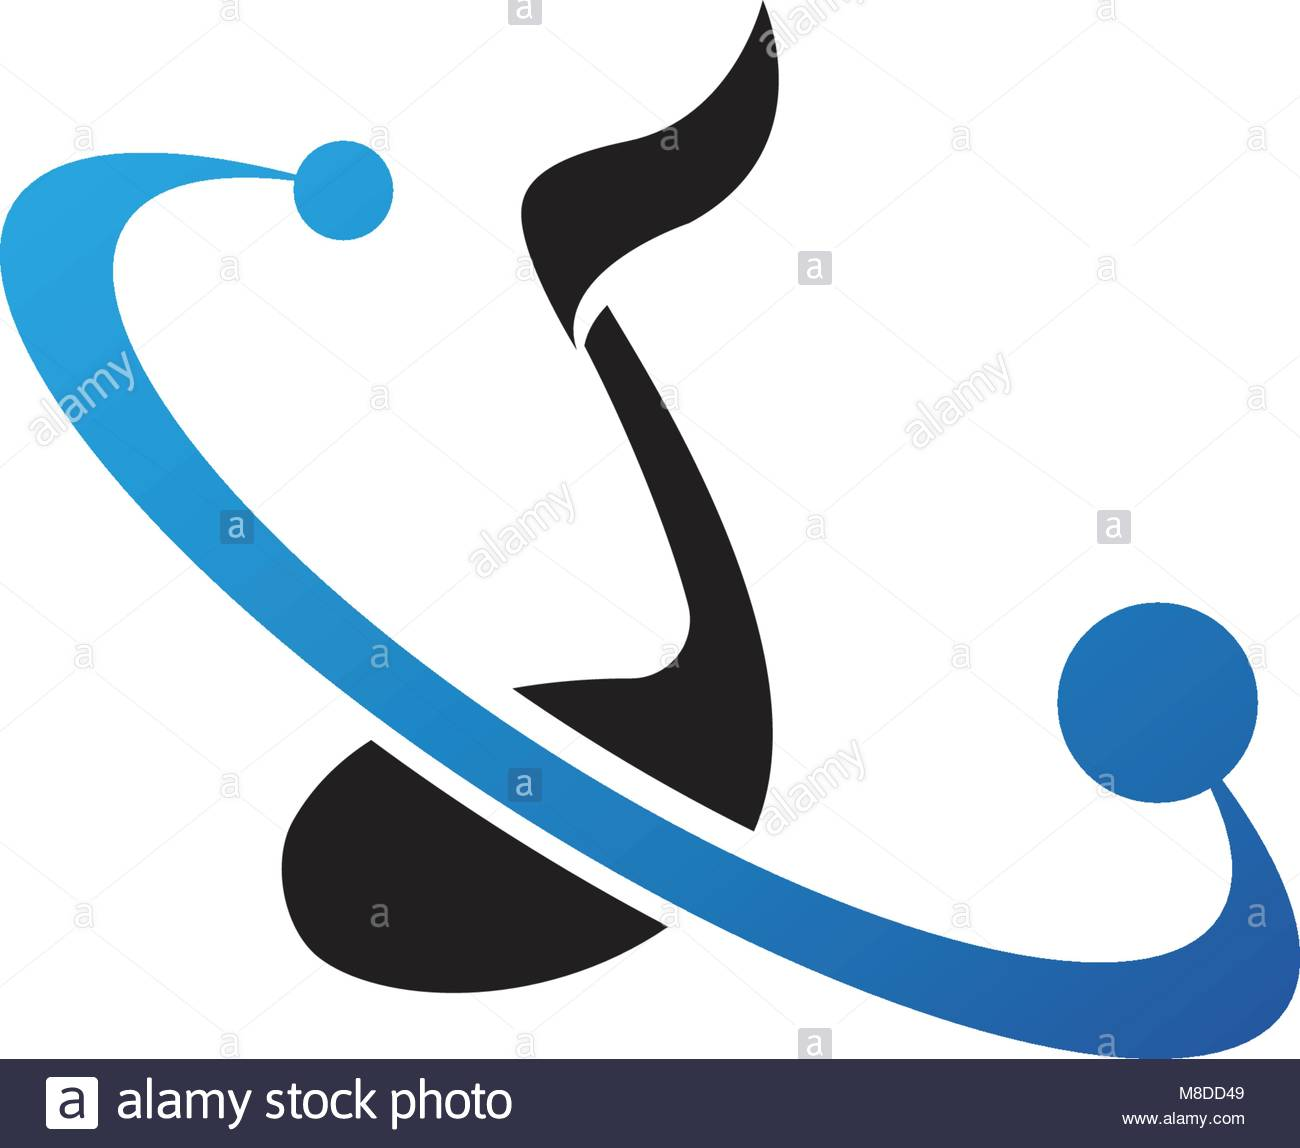 Music Symbols Cut Out Stock Images Pictures Alamy